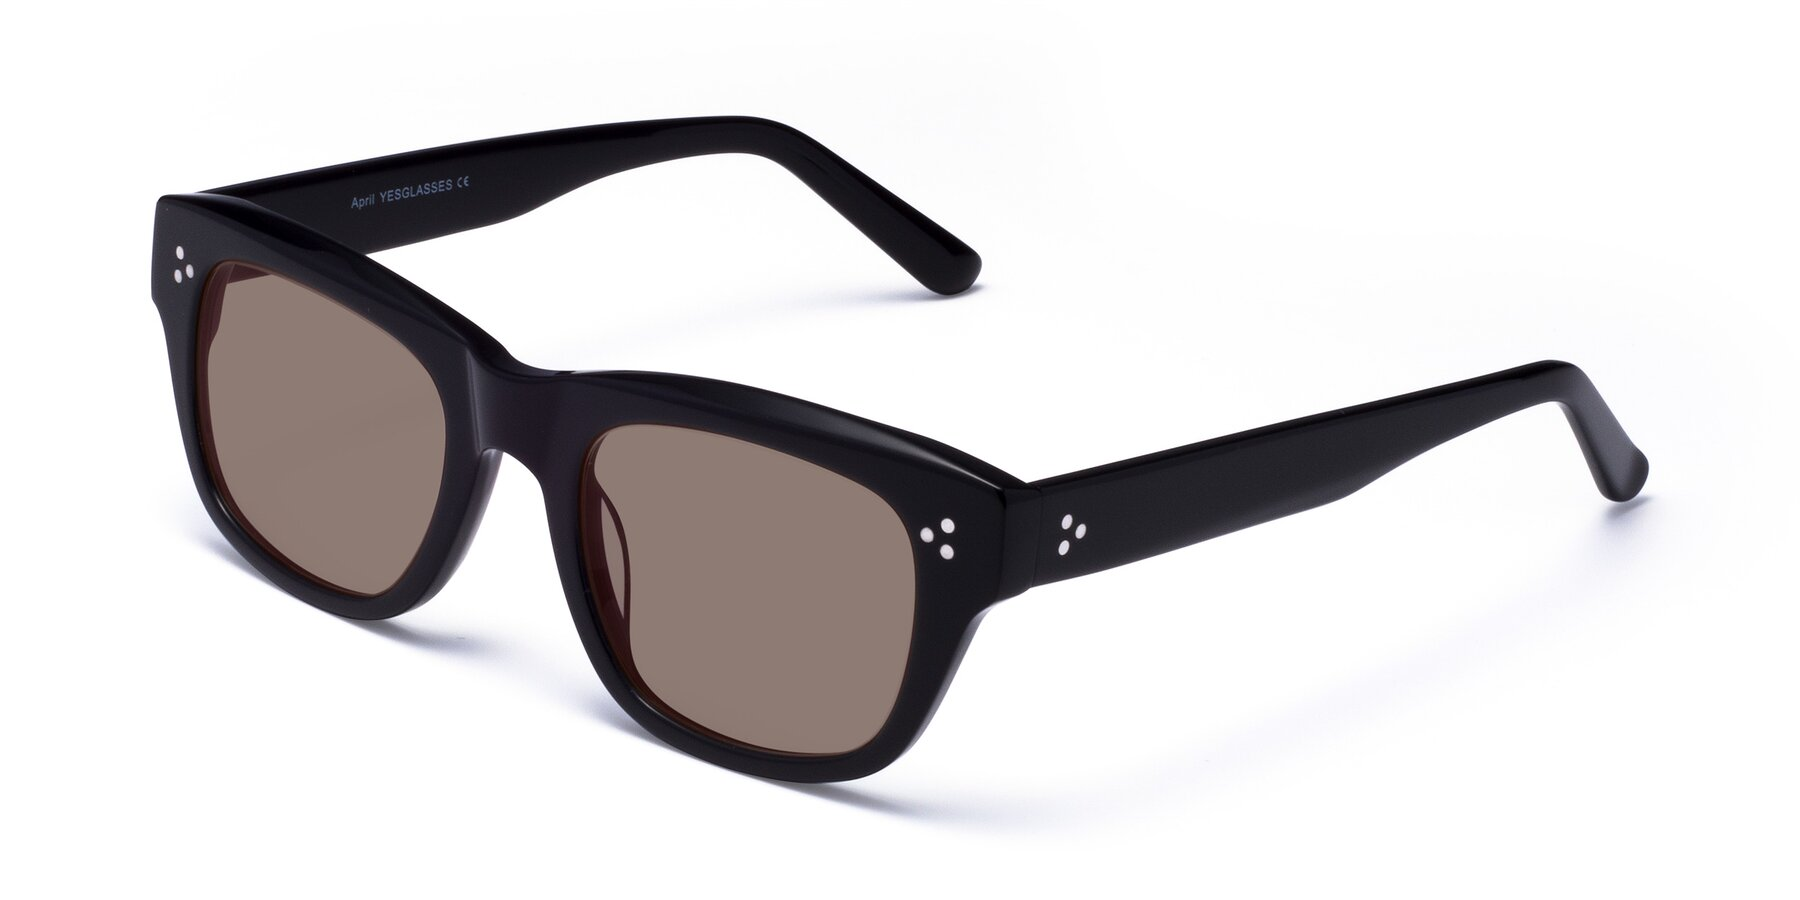 Angle of April in Black with Medium Brown Tinted Lenses